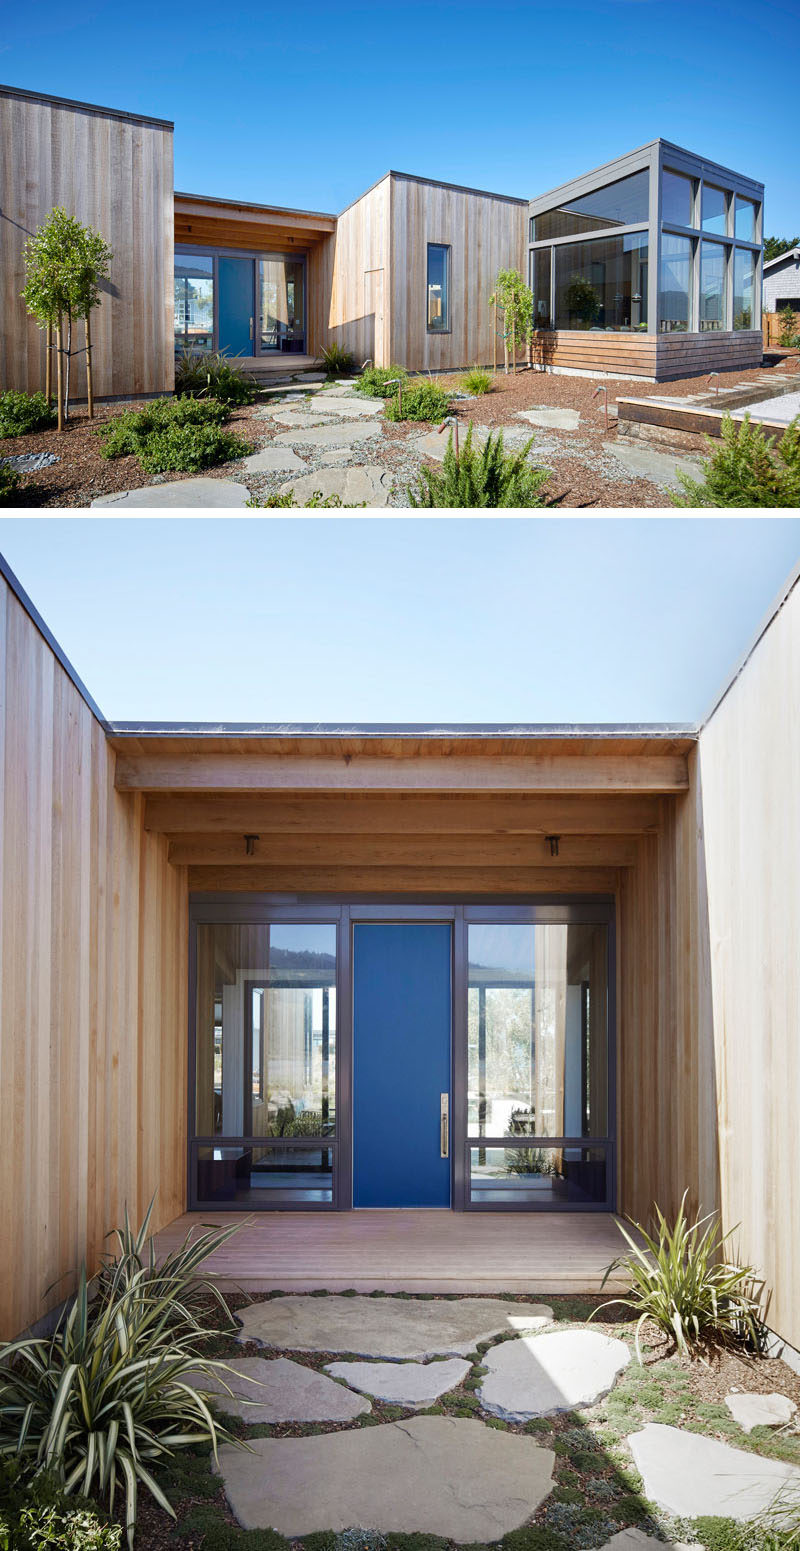 At the front of this house, minimal landscaping with stepping stones guides you to the blue front door that adds a pop of color to the home.